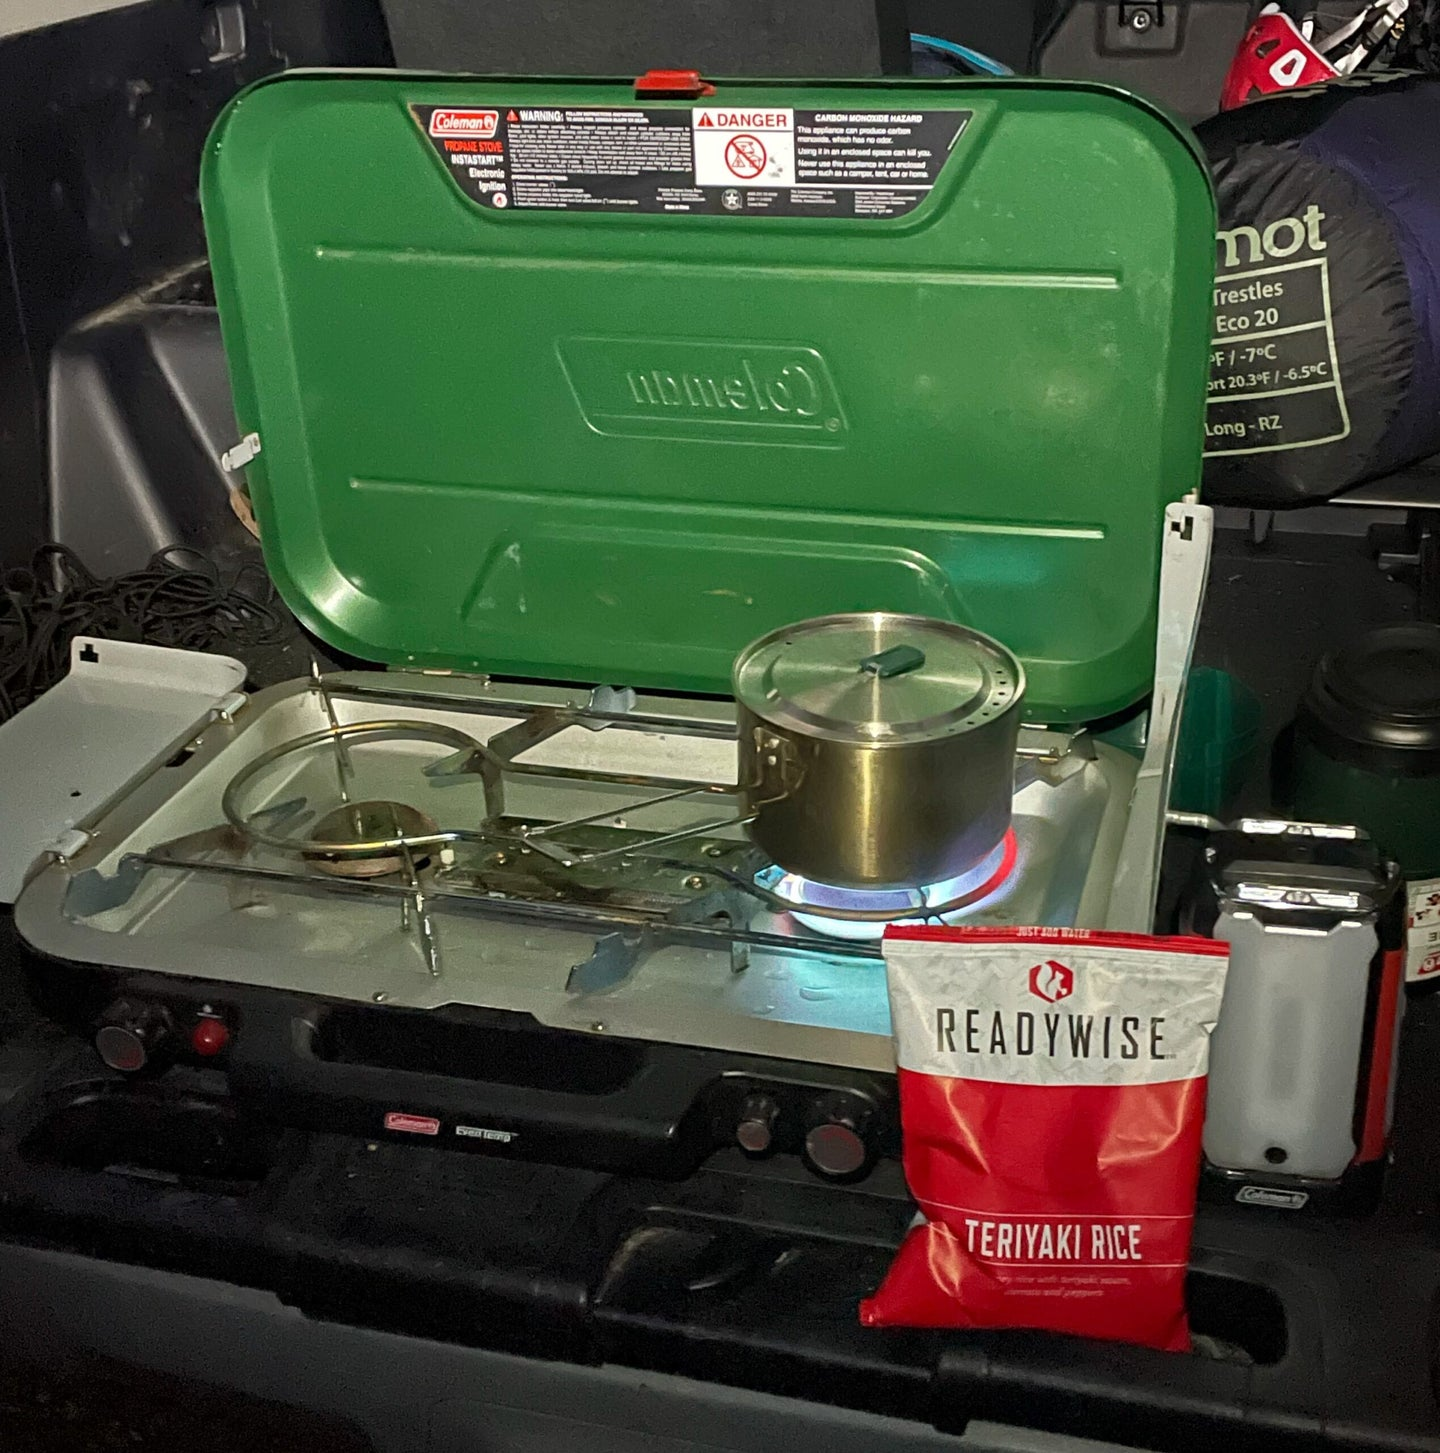 A green Coleman stove cooking a ReadyWise teriyaki meal